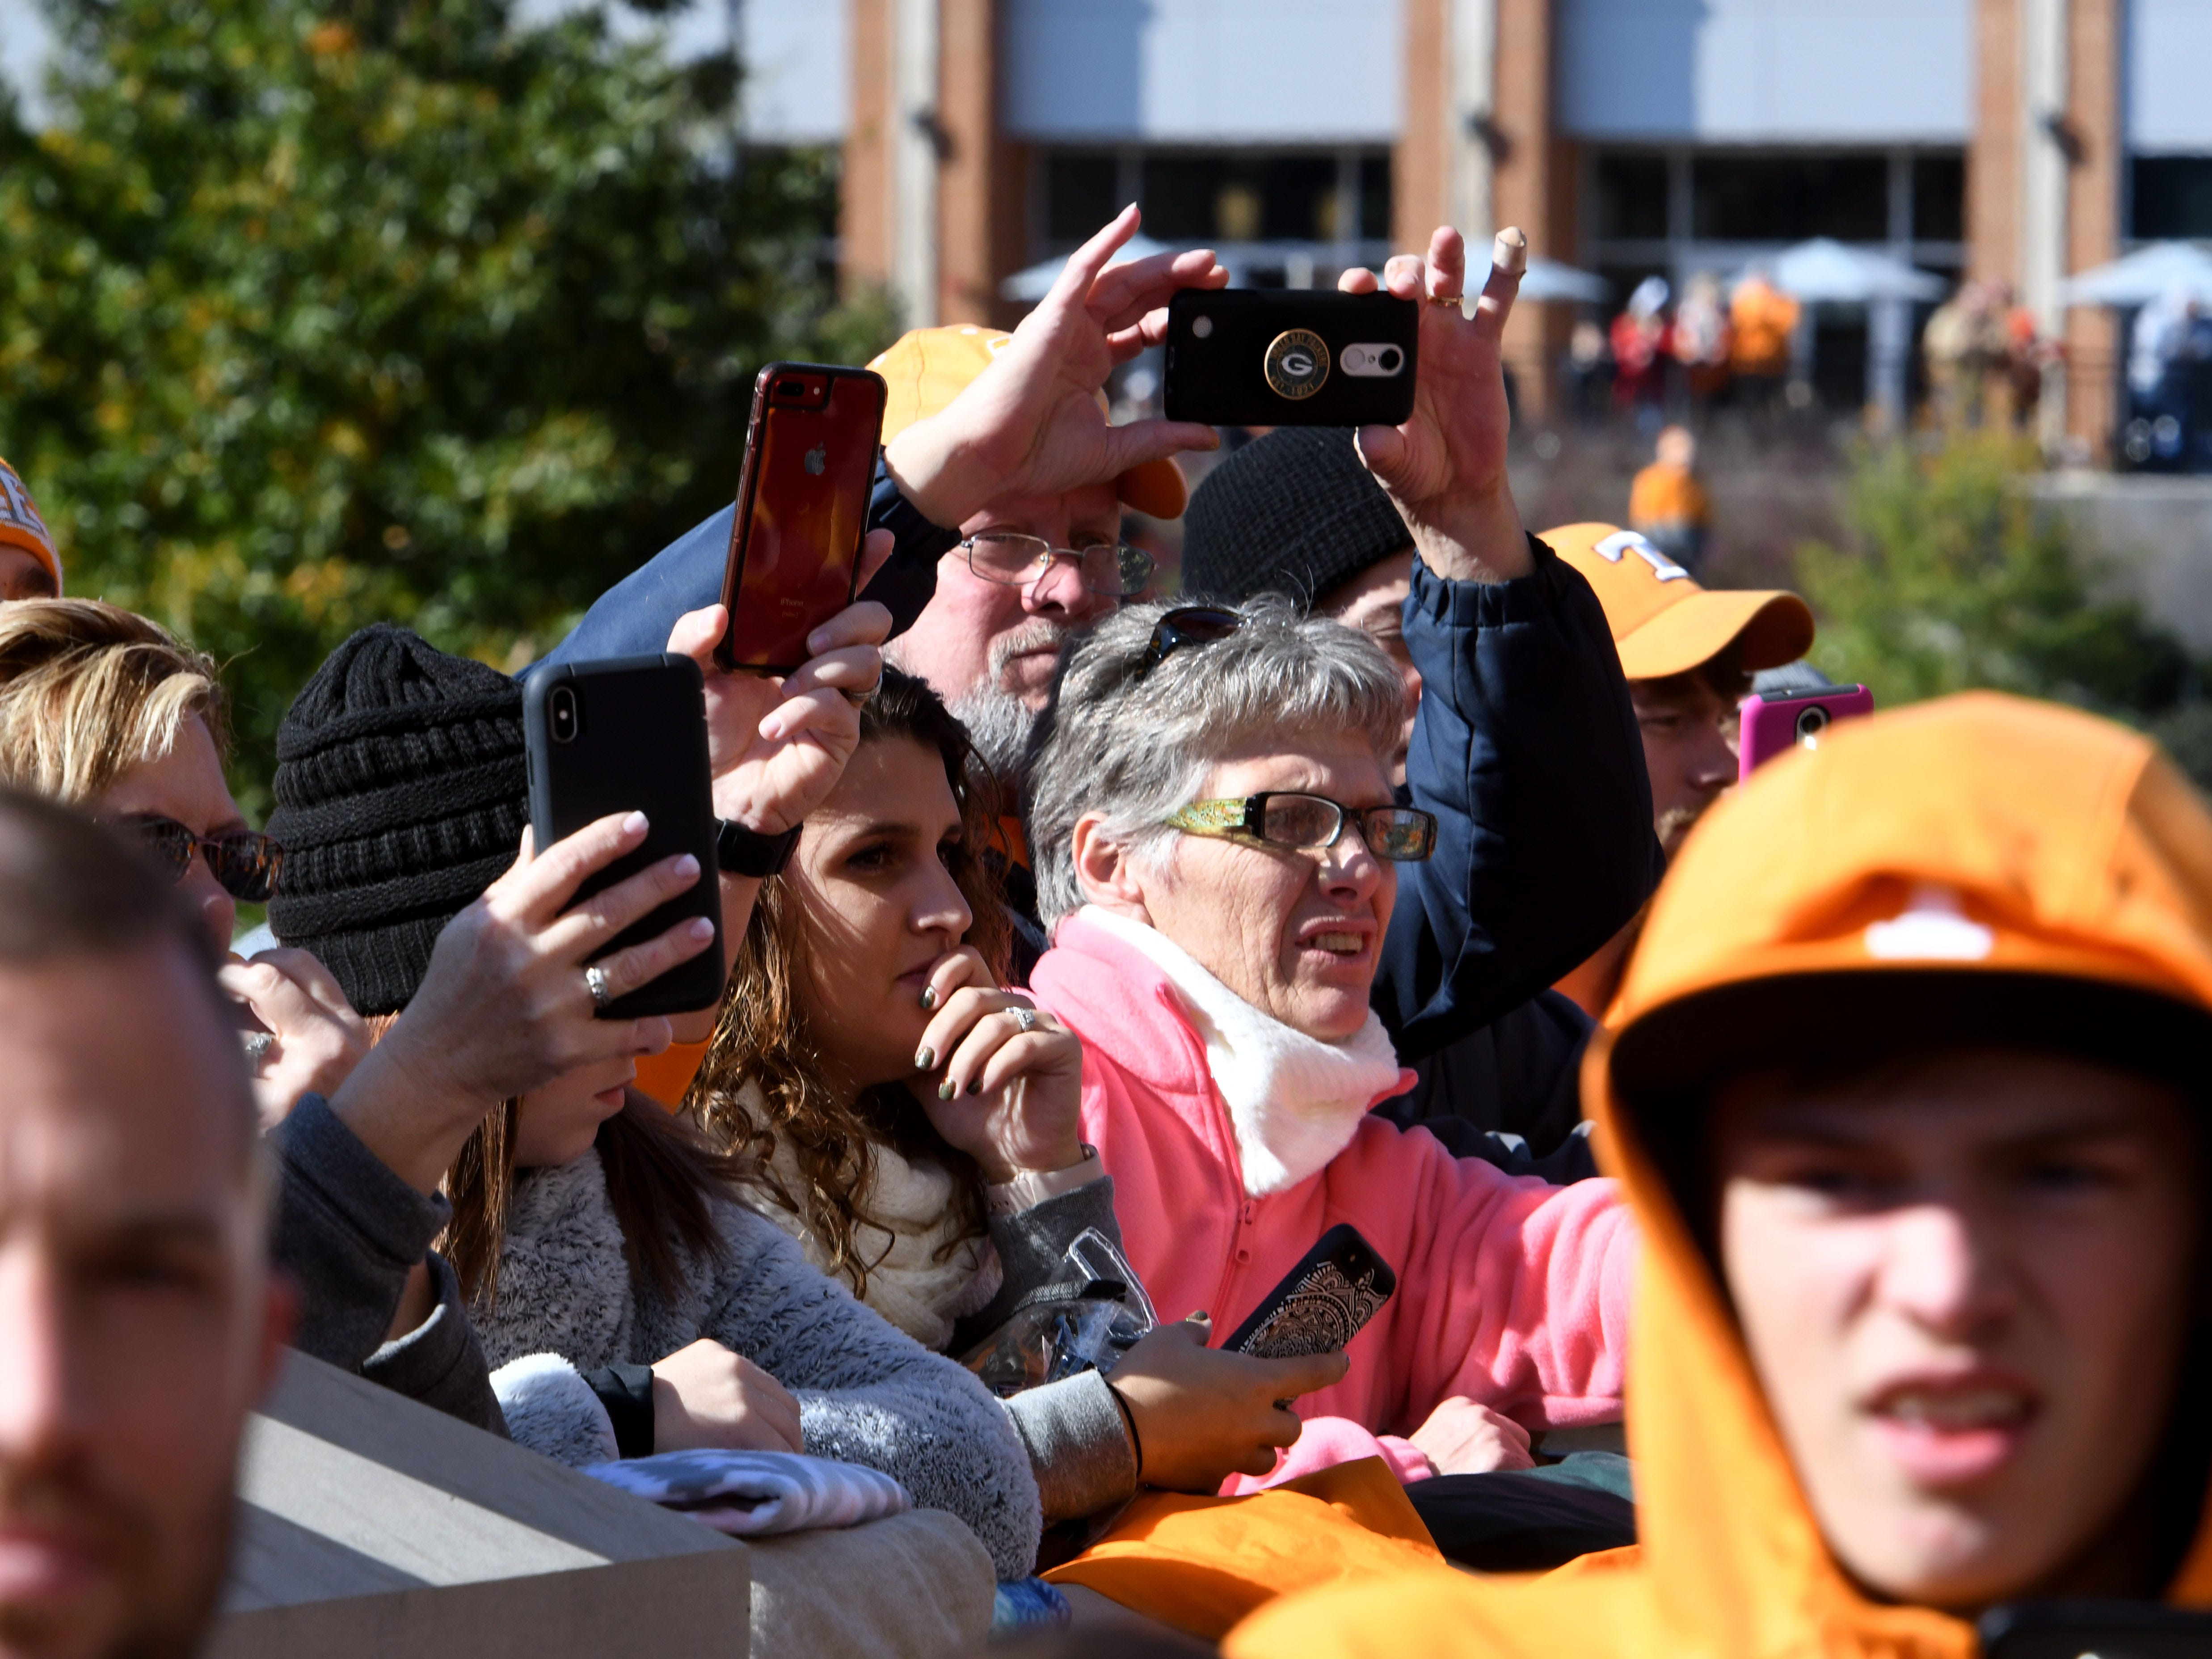 Tennessee fans capturing the Vol Walk before the Kentucky game Saturday, November 10, 2018 at Neyland Stadium in Knoxville, Tenn.